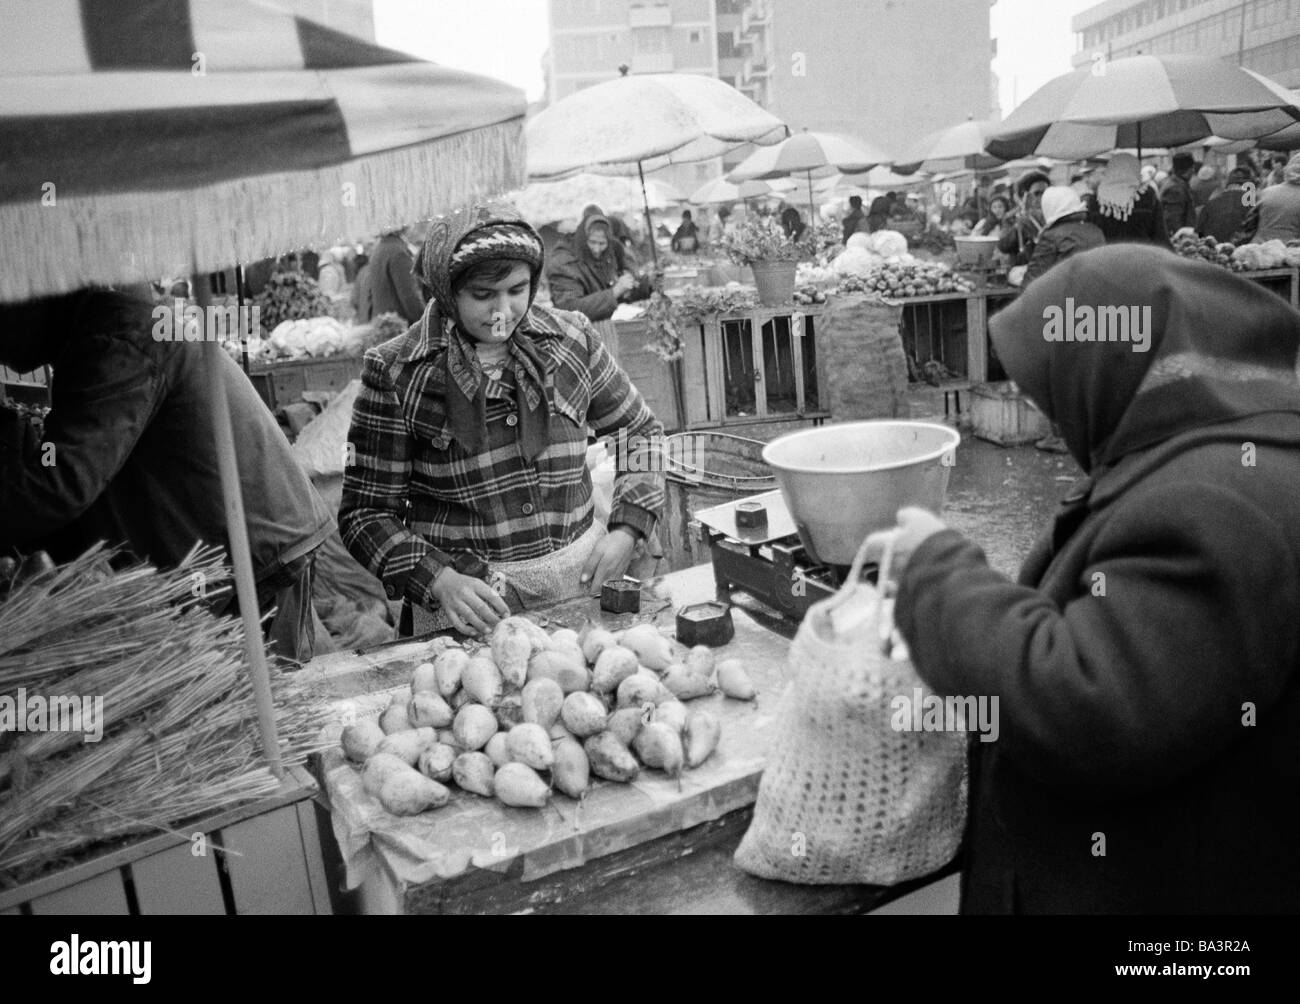 Eighties, black and white photo, people, weekly market, market stall with fruit and vegetables, market woman, aged Stock Photo